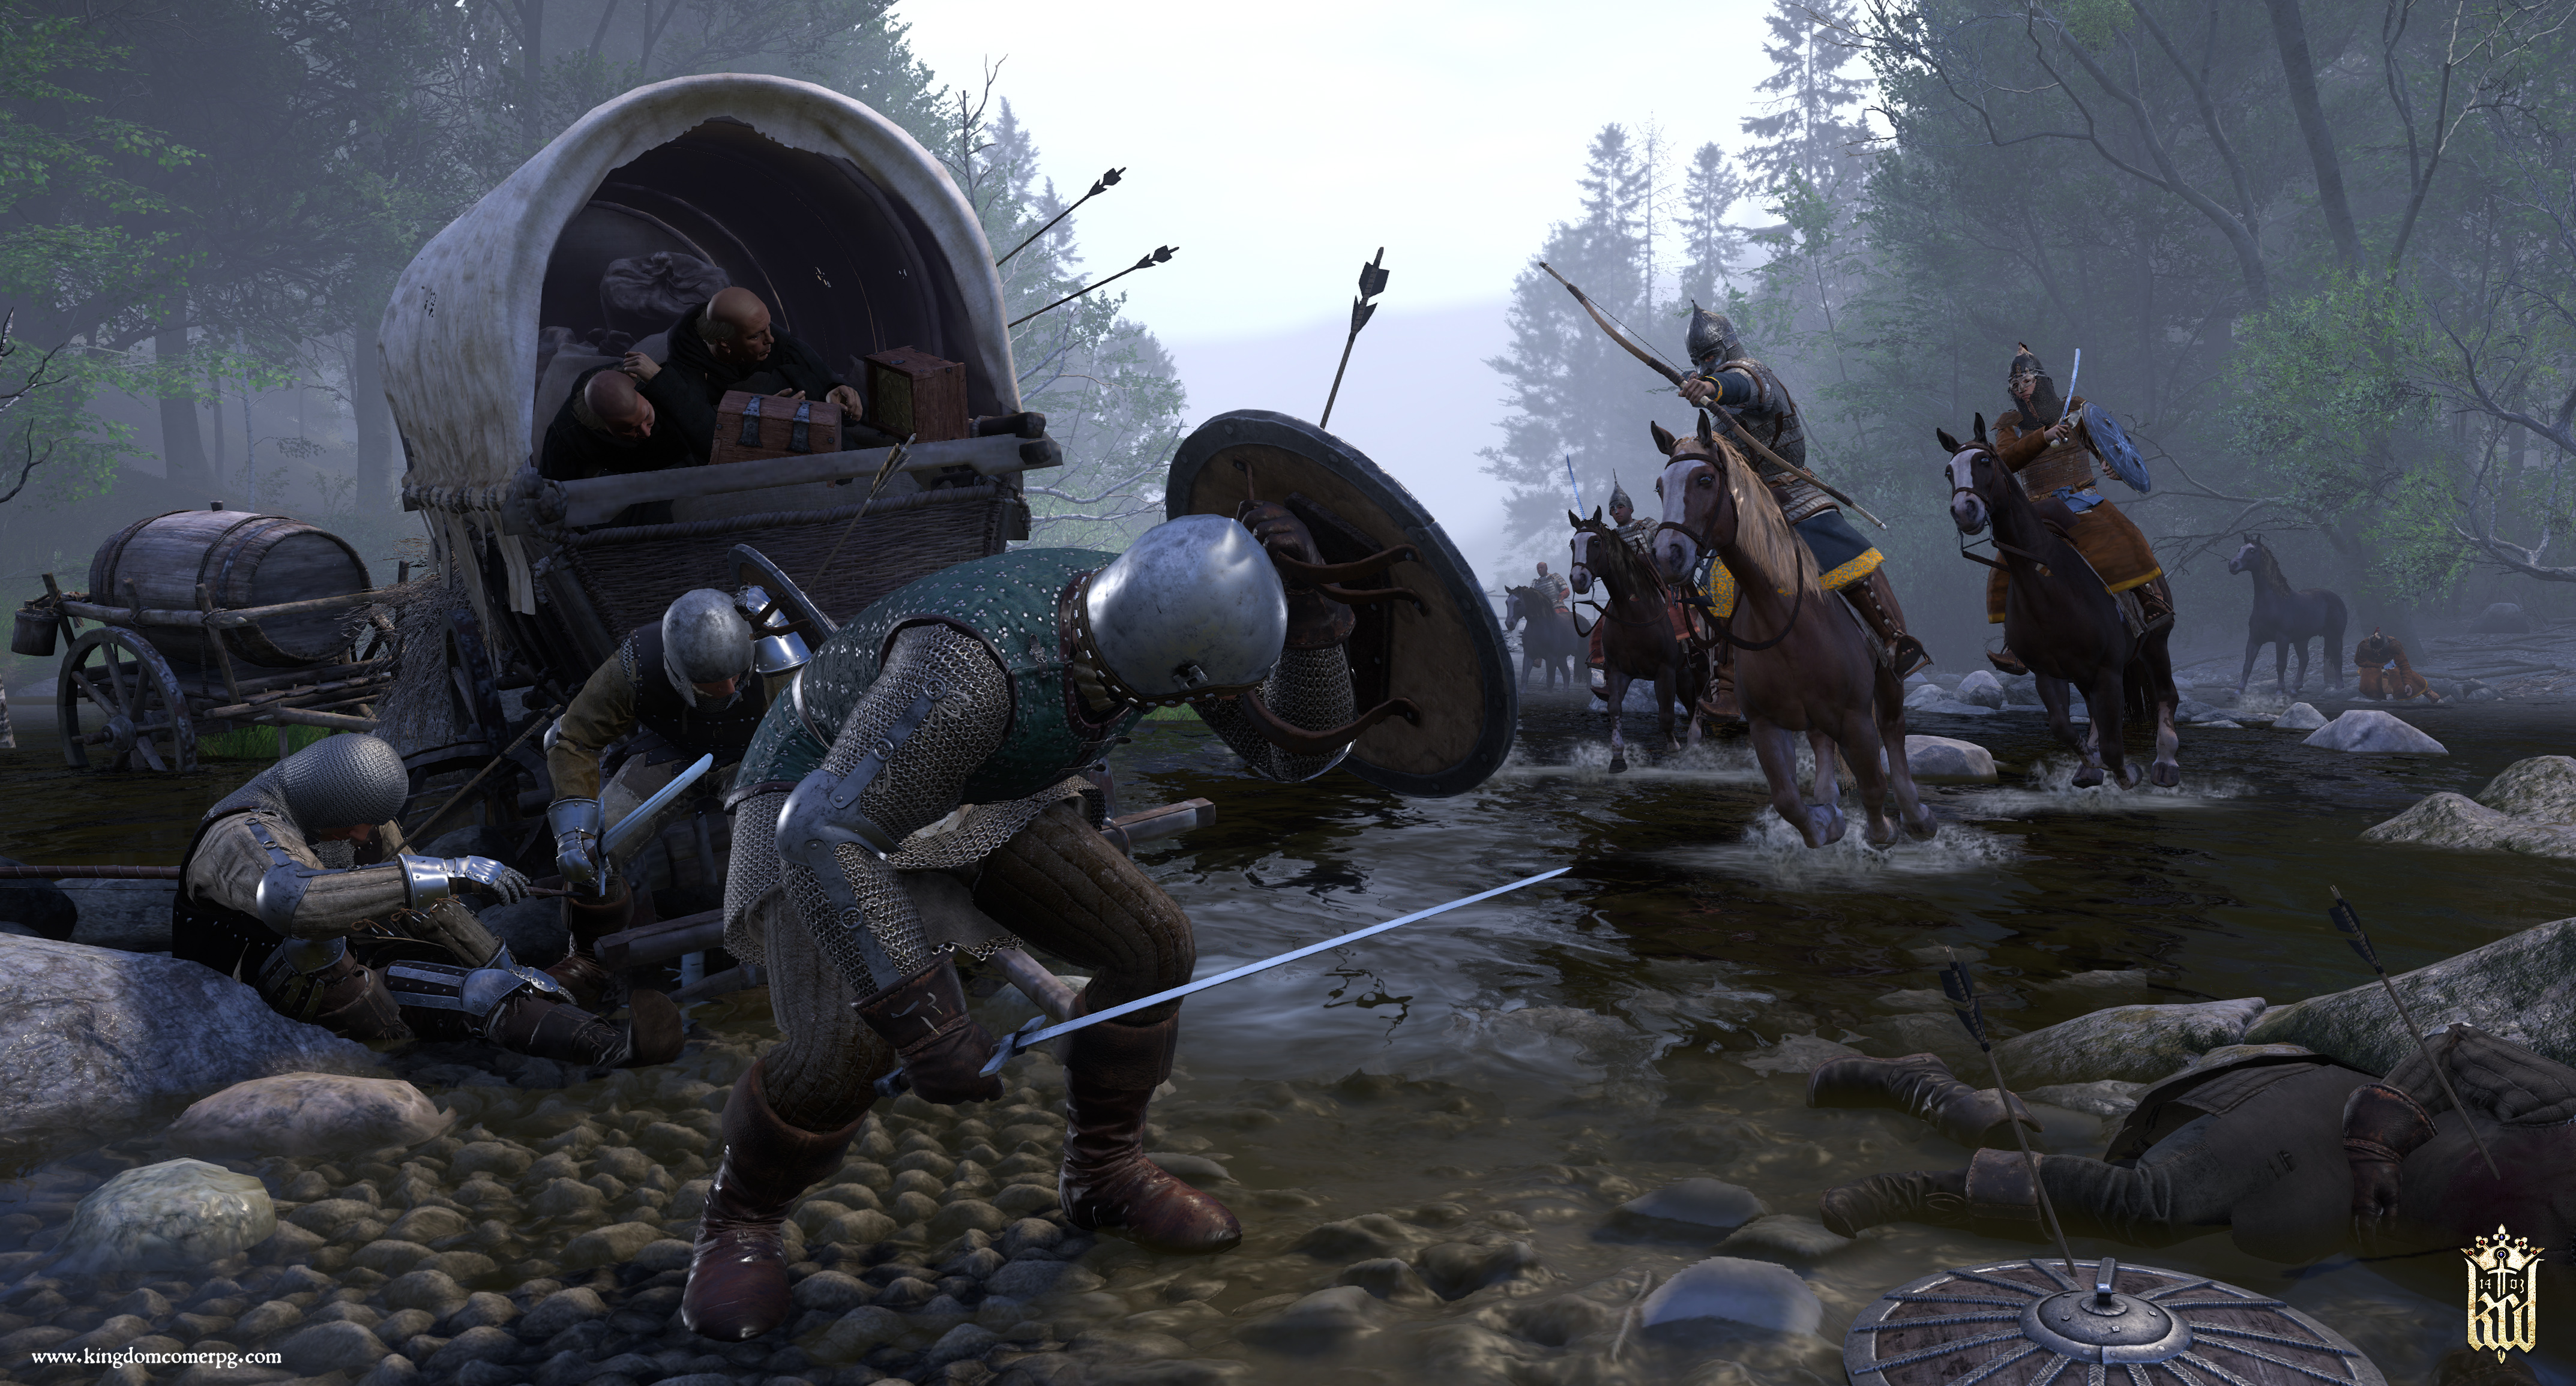 Kingdom Come: Deliverance is getting four story DLCs and free